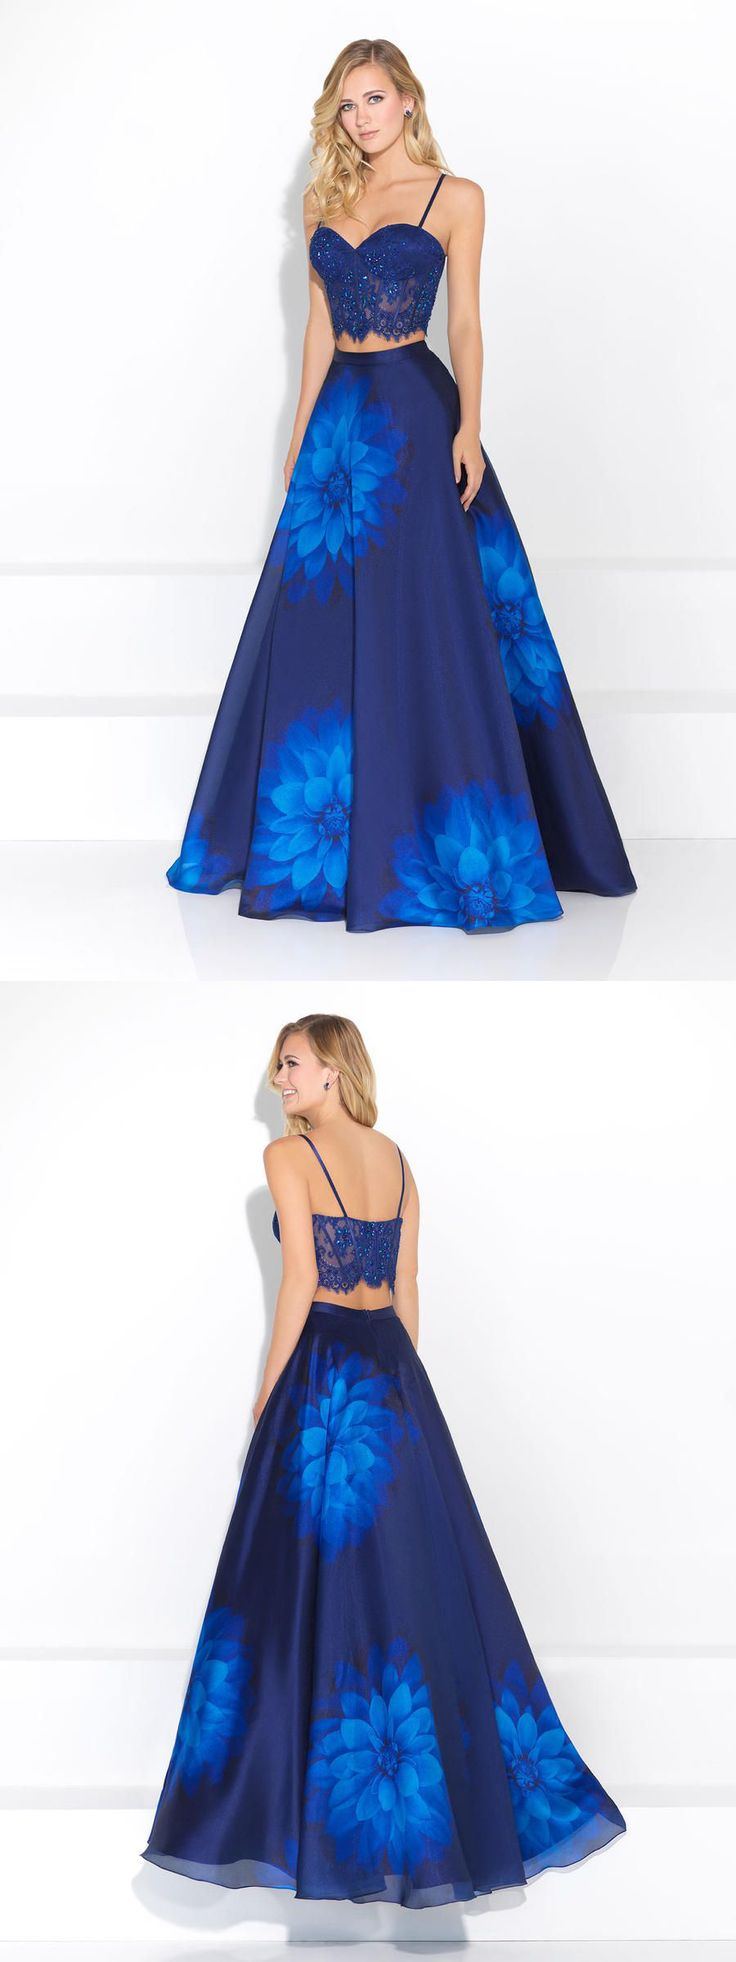 Lace and Floral 2pc Prom Dress